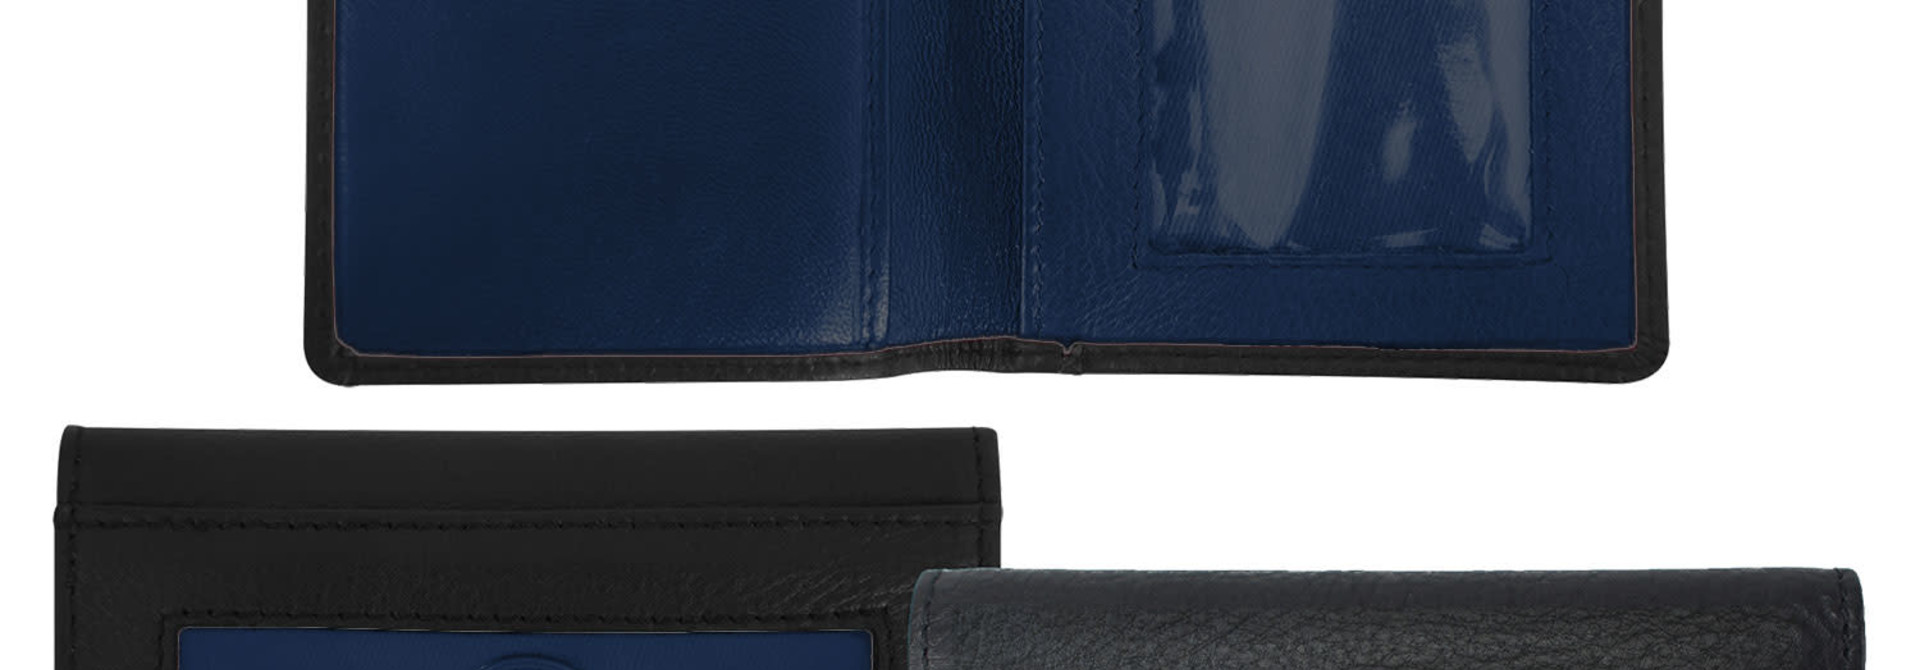 Black/Navy Wallet Berea college ID Holder